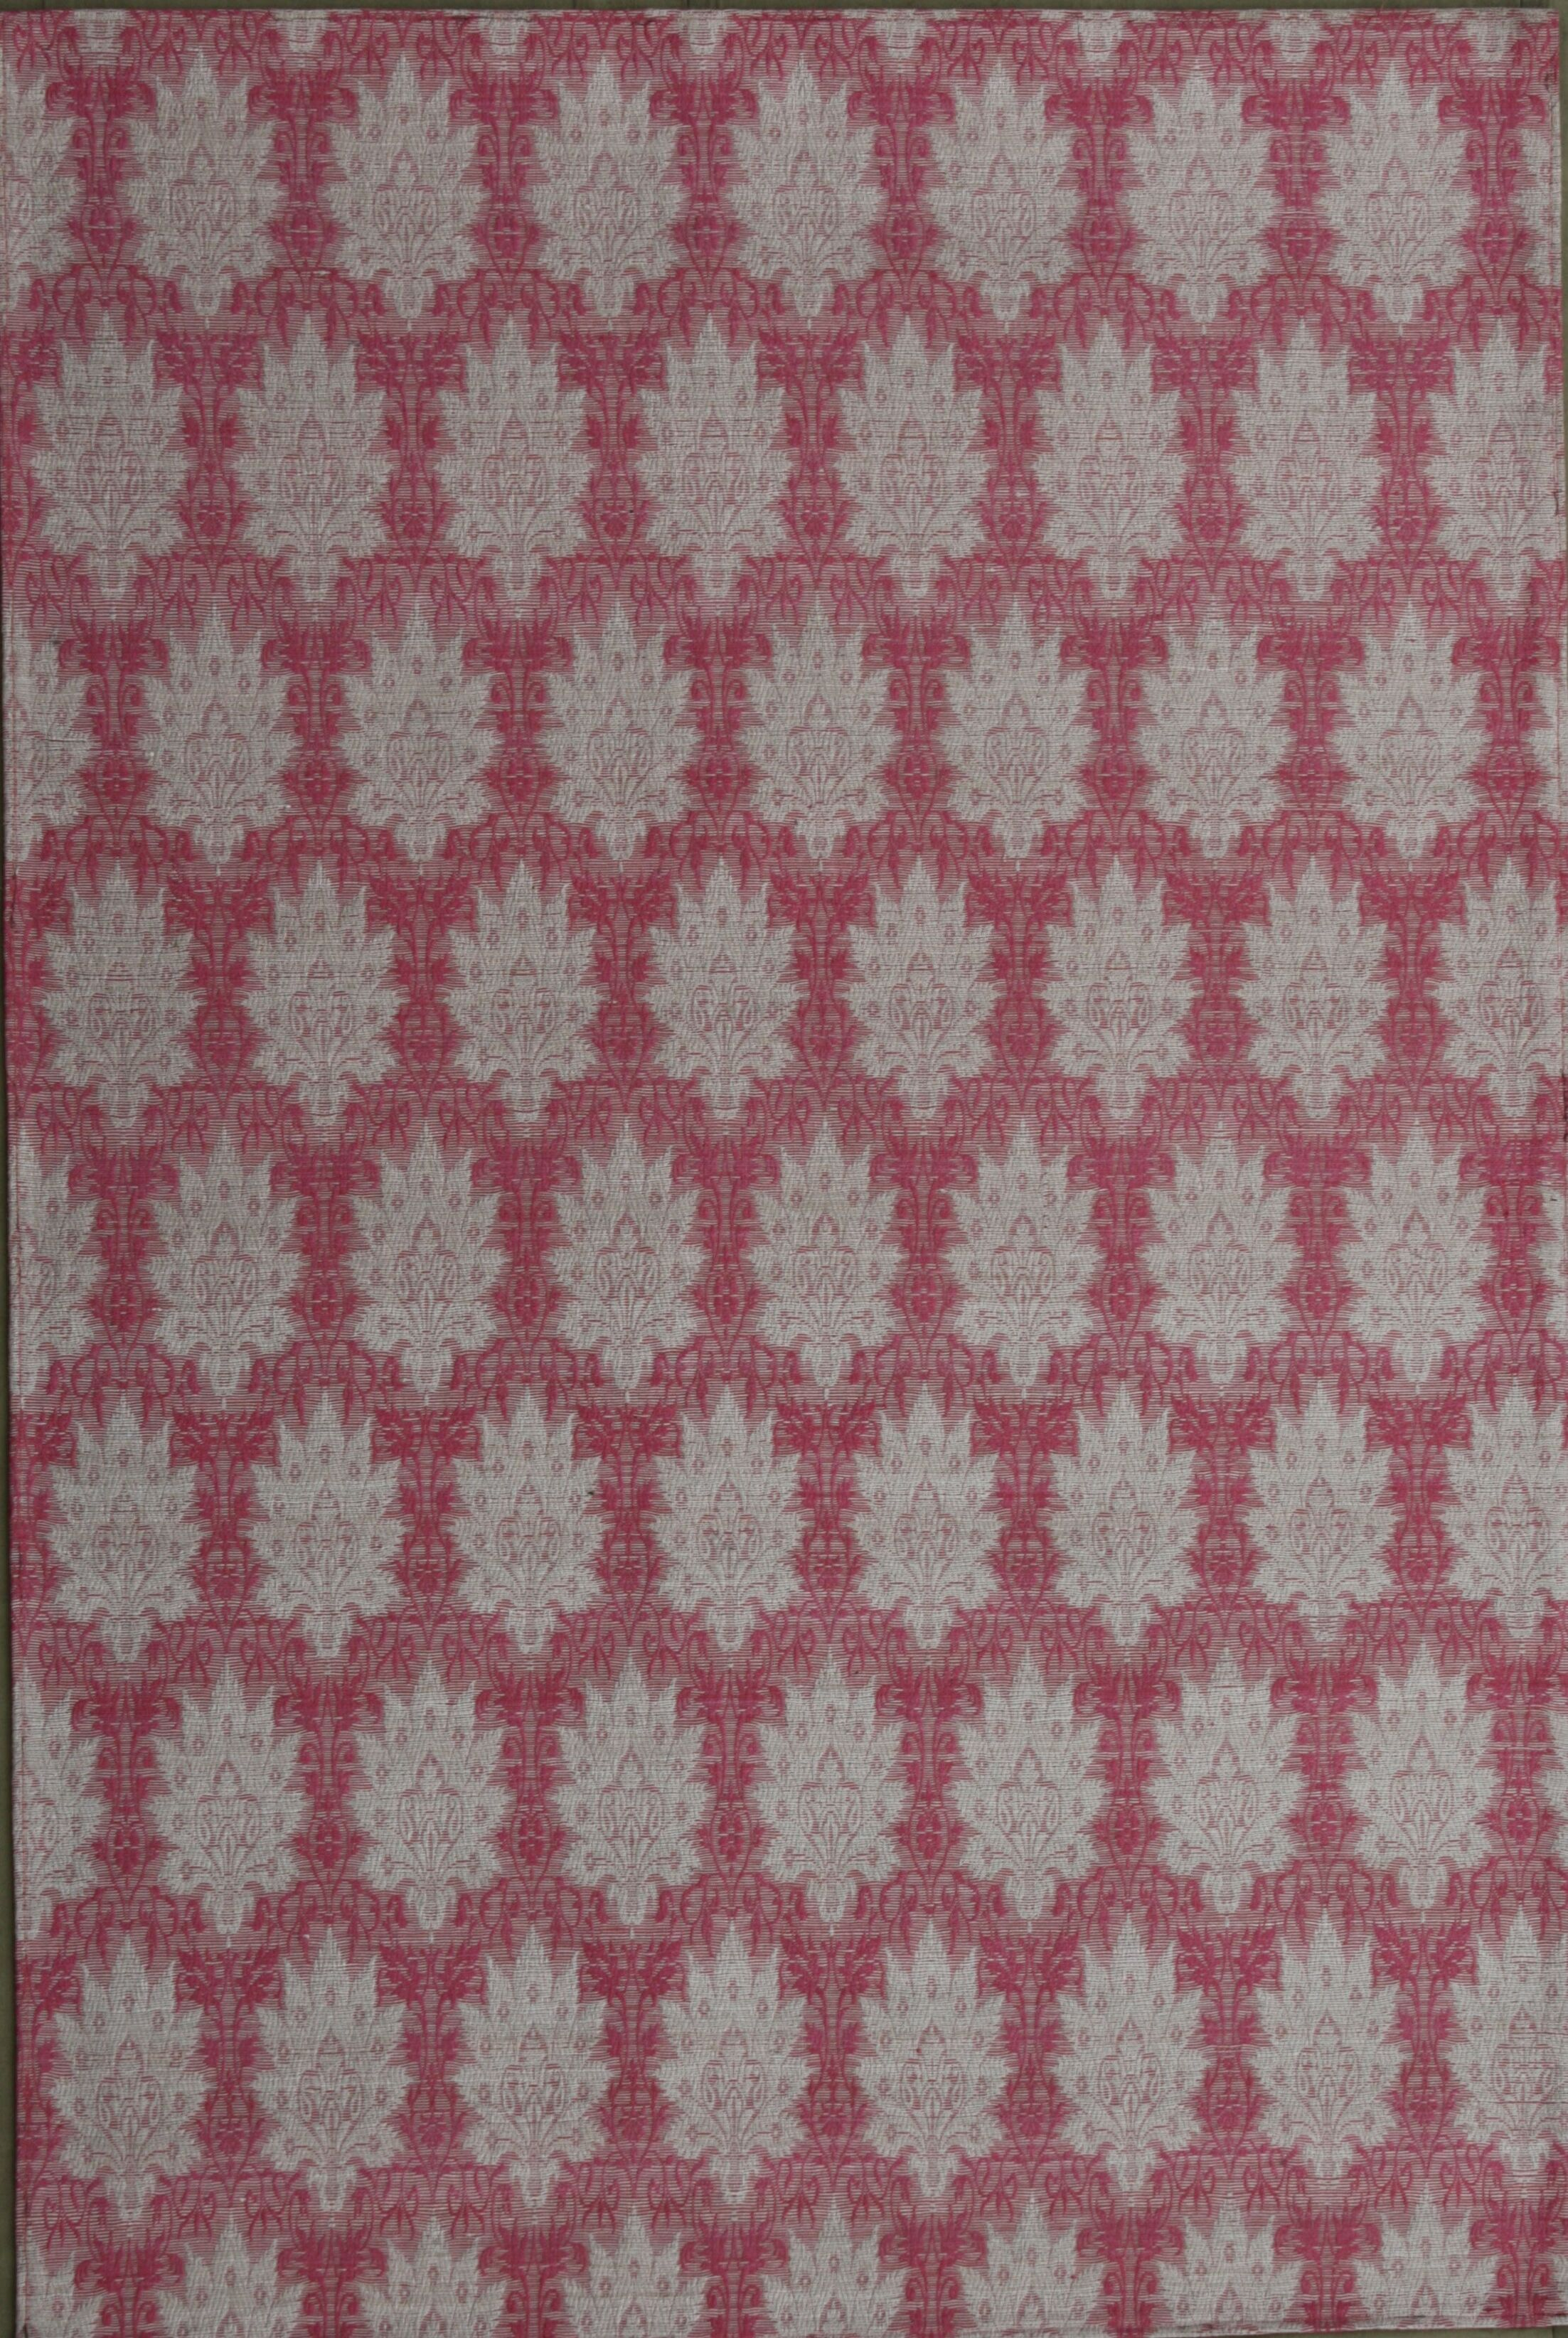 Electra Hand-Woven Pink/White Area Rug Rug Size: 7'9